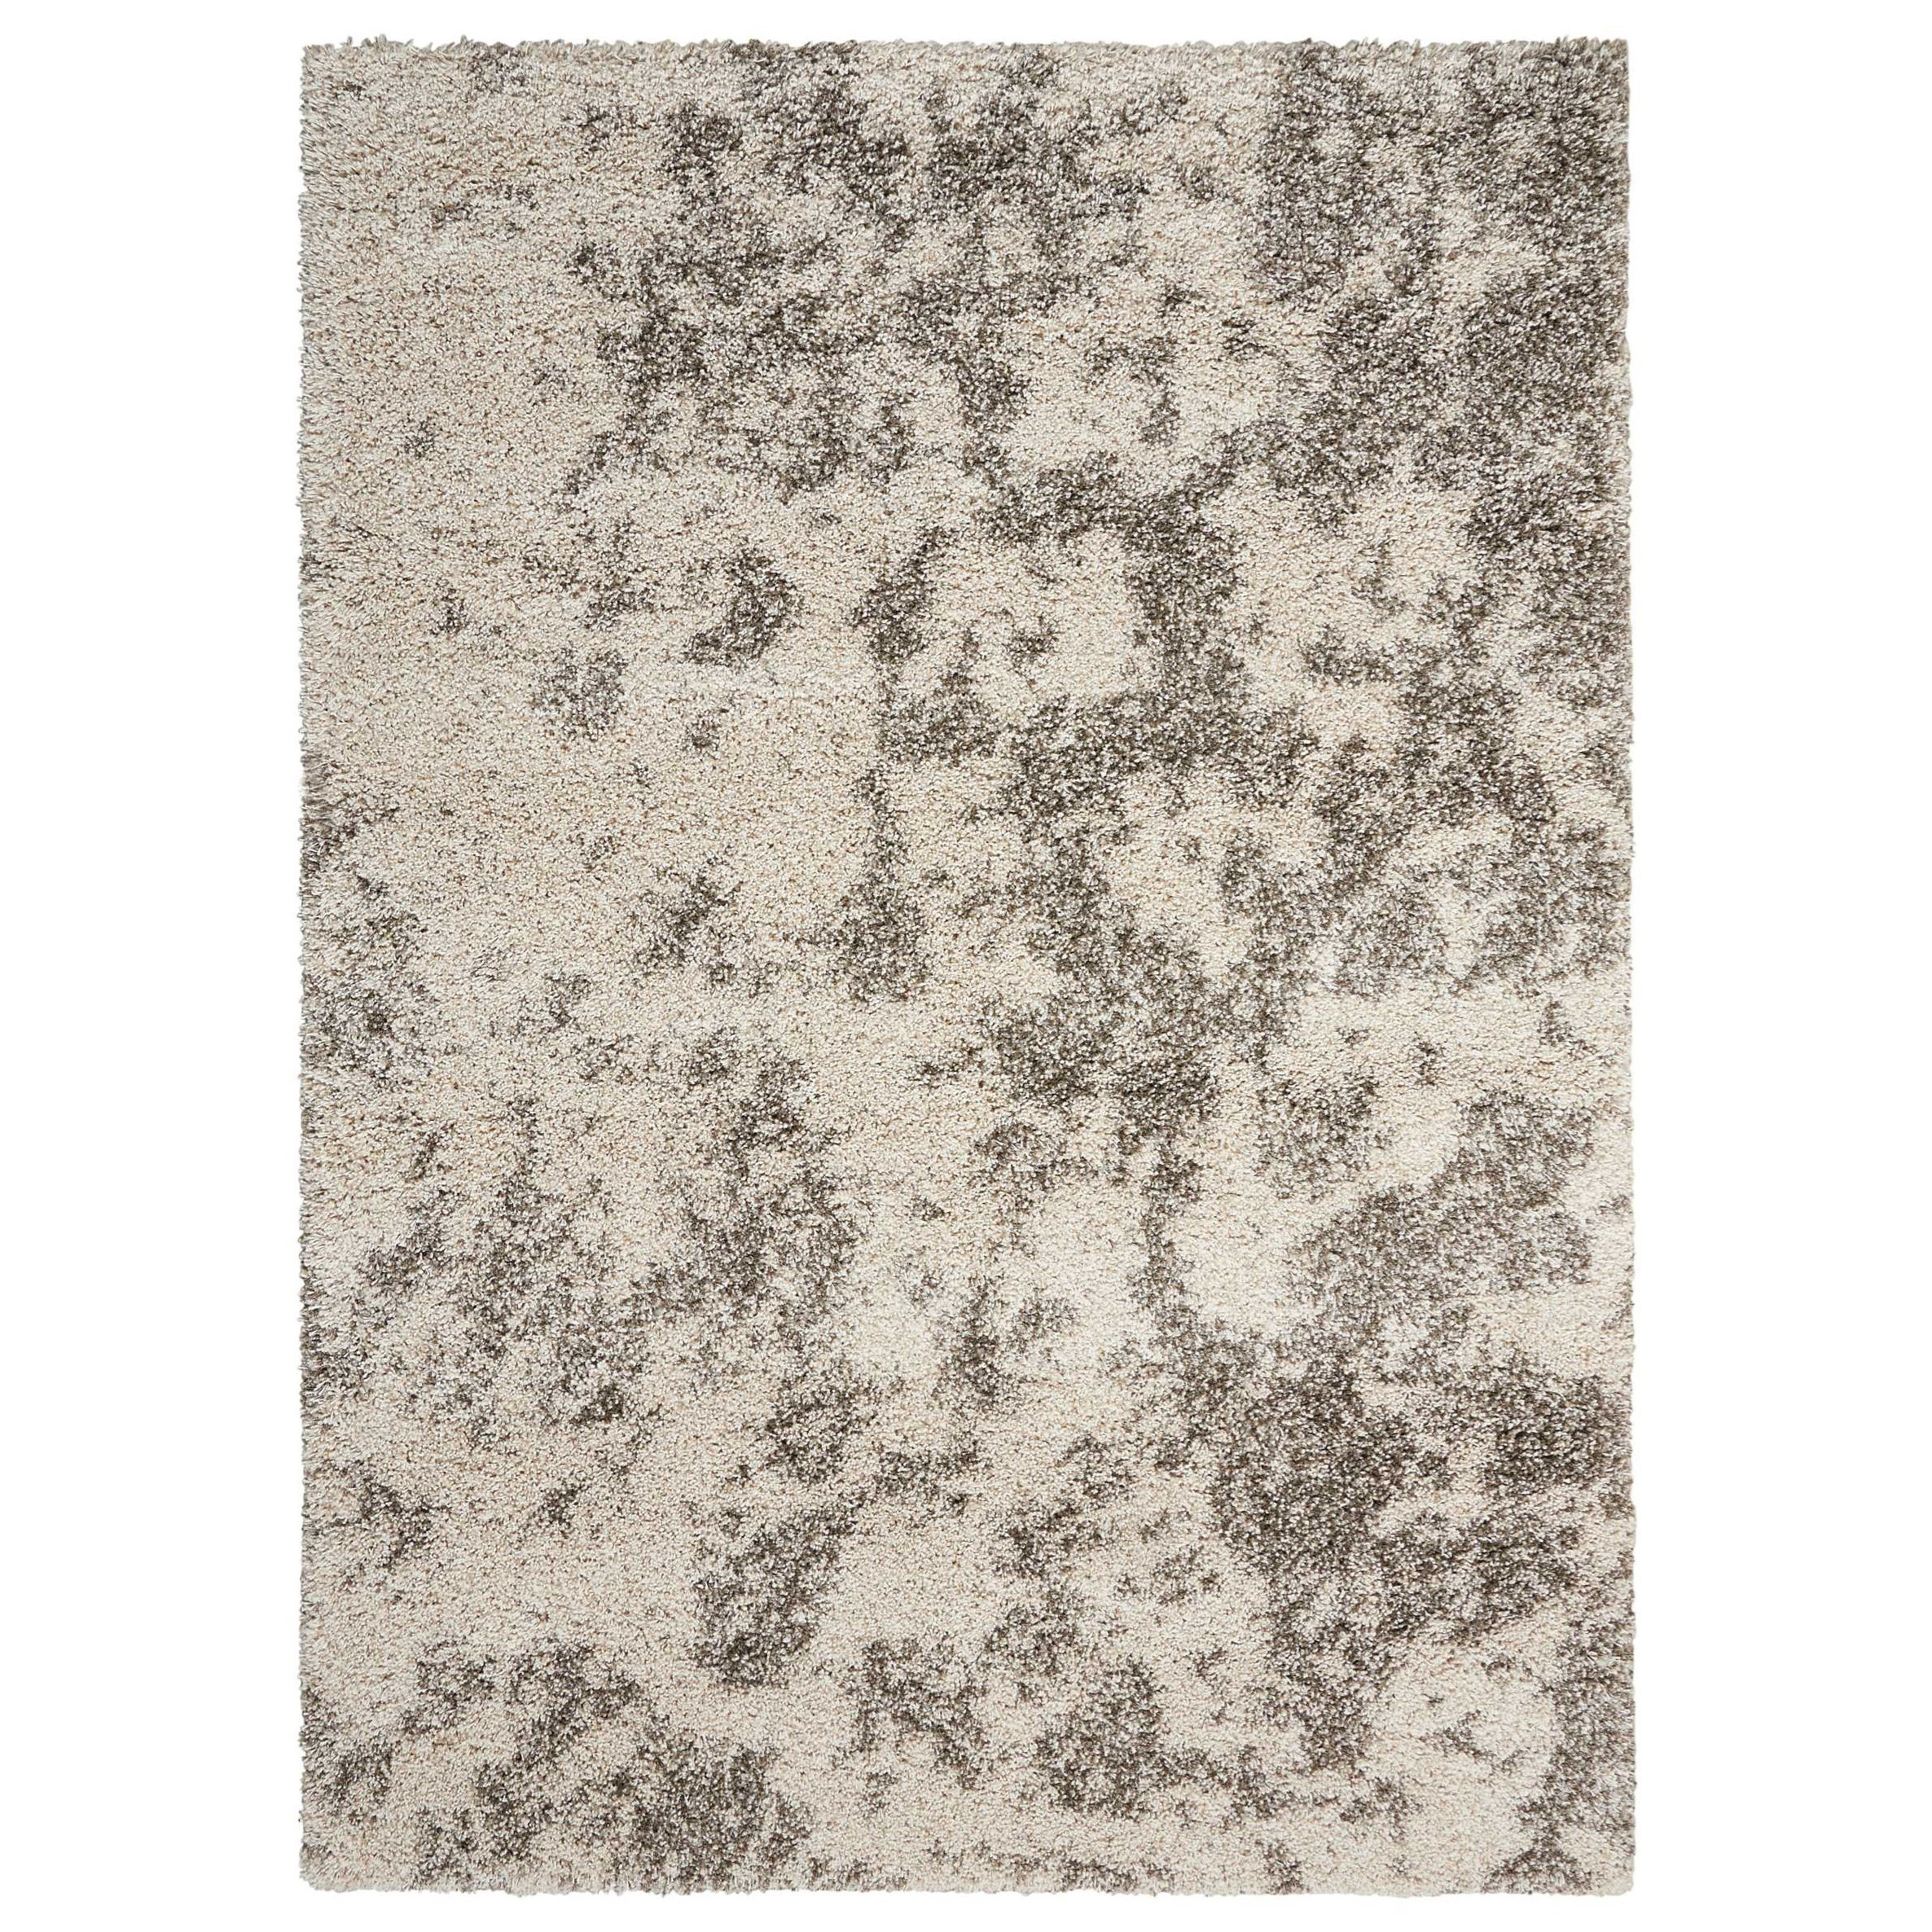 Amore Amore AMOR4 Green 4'x6' Area Rug by Nourison at Home Collections Furniture